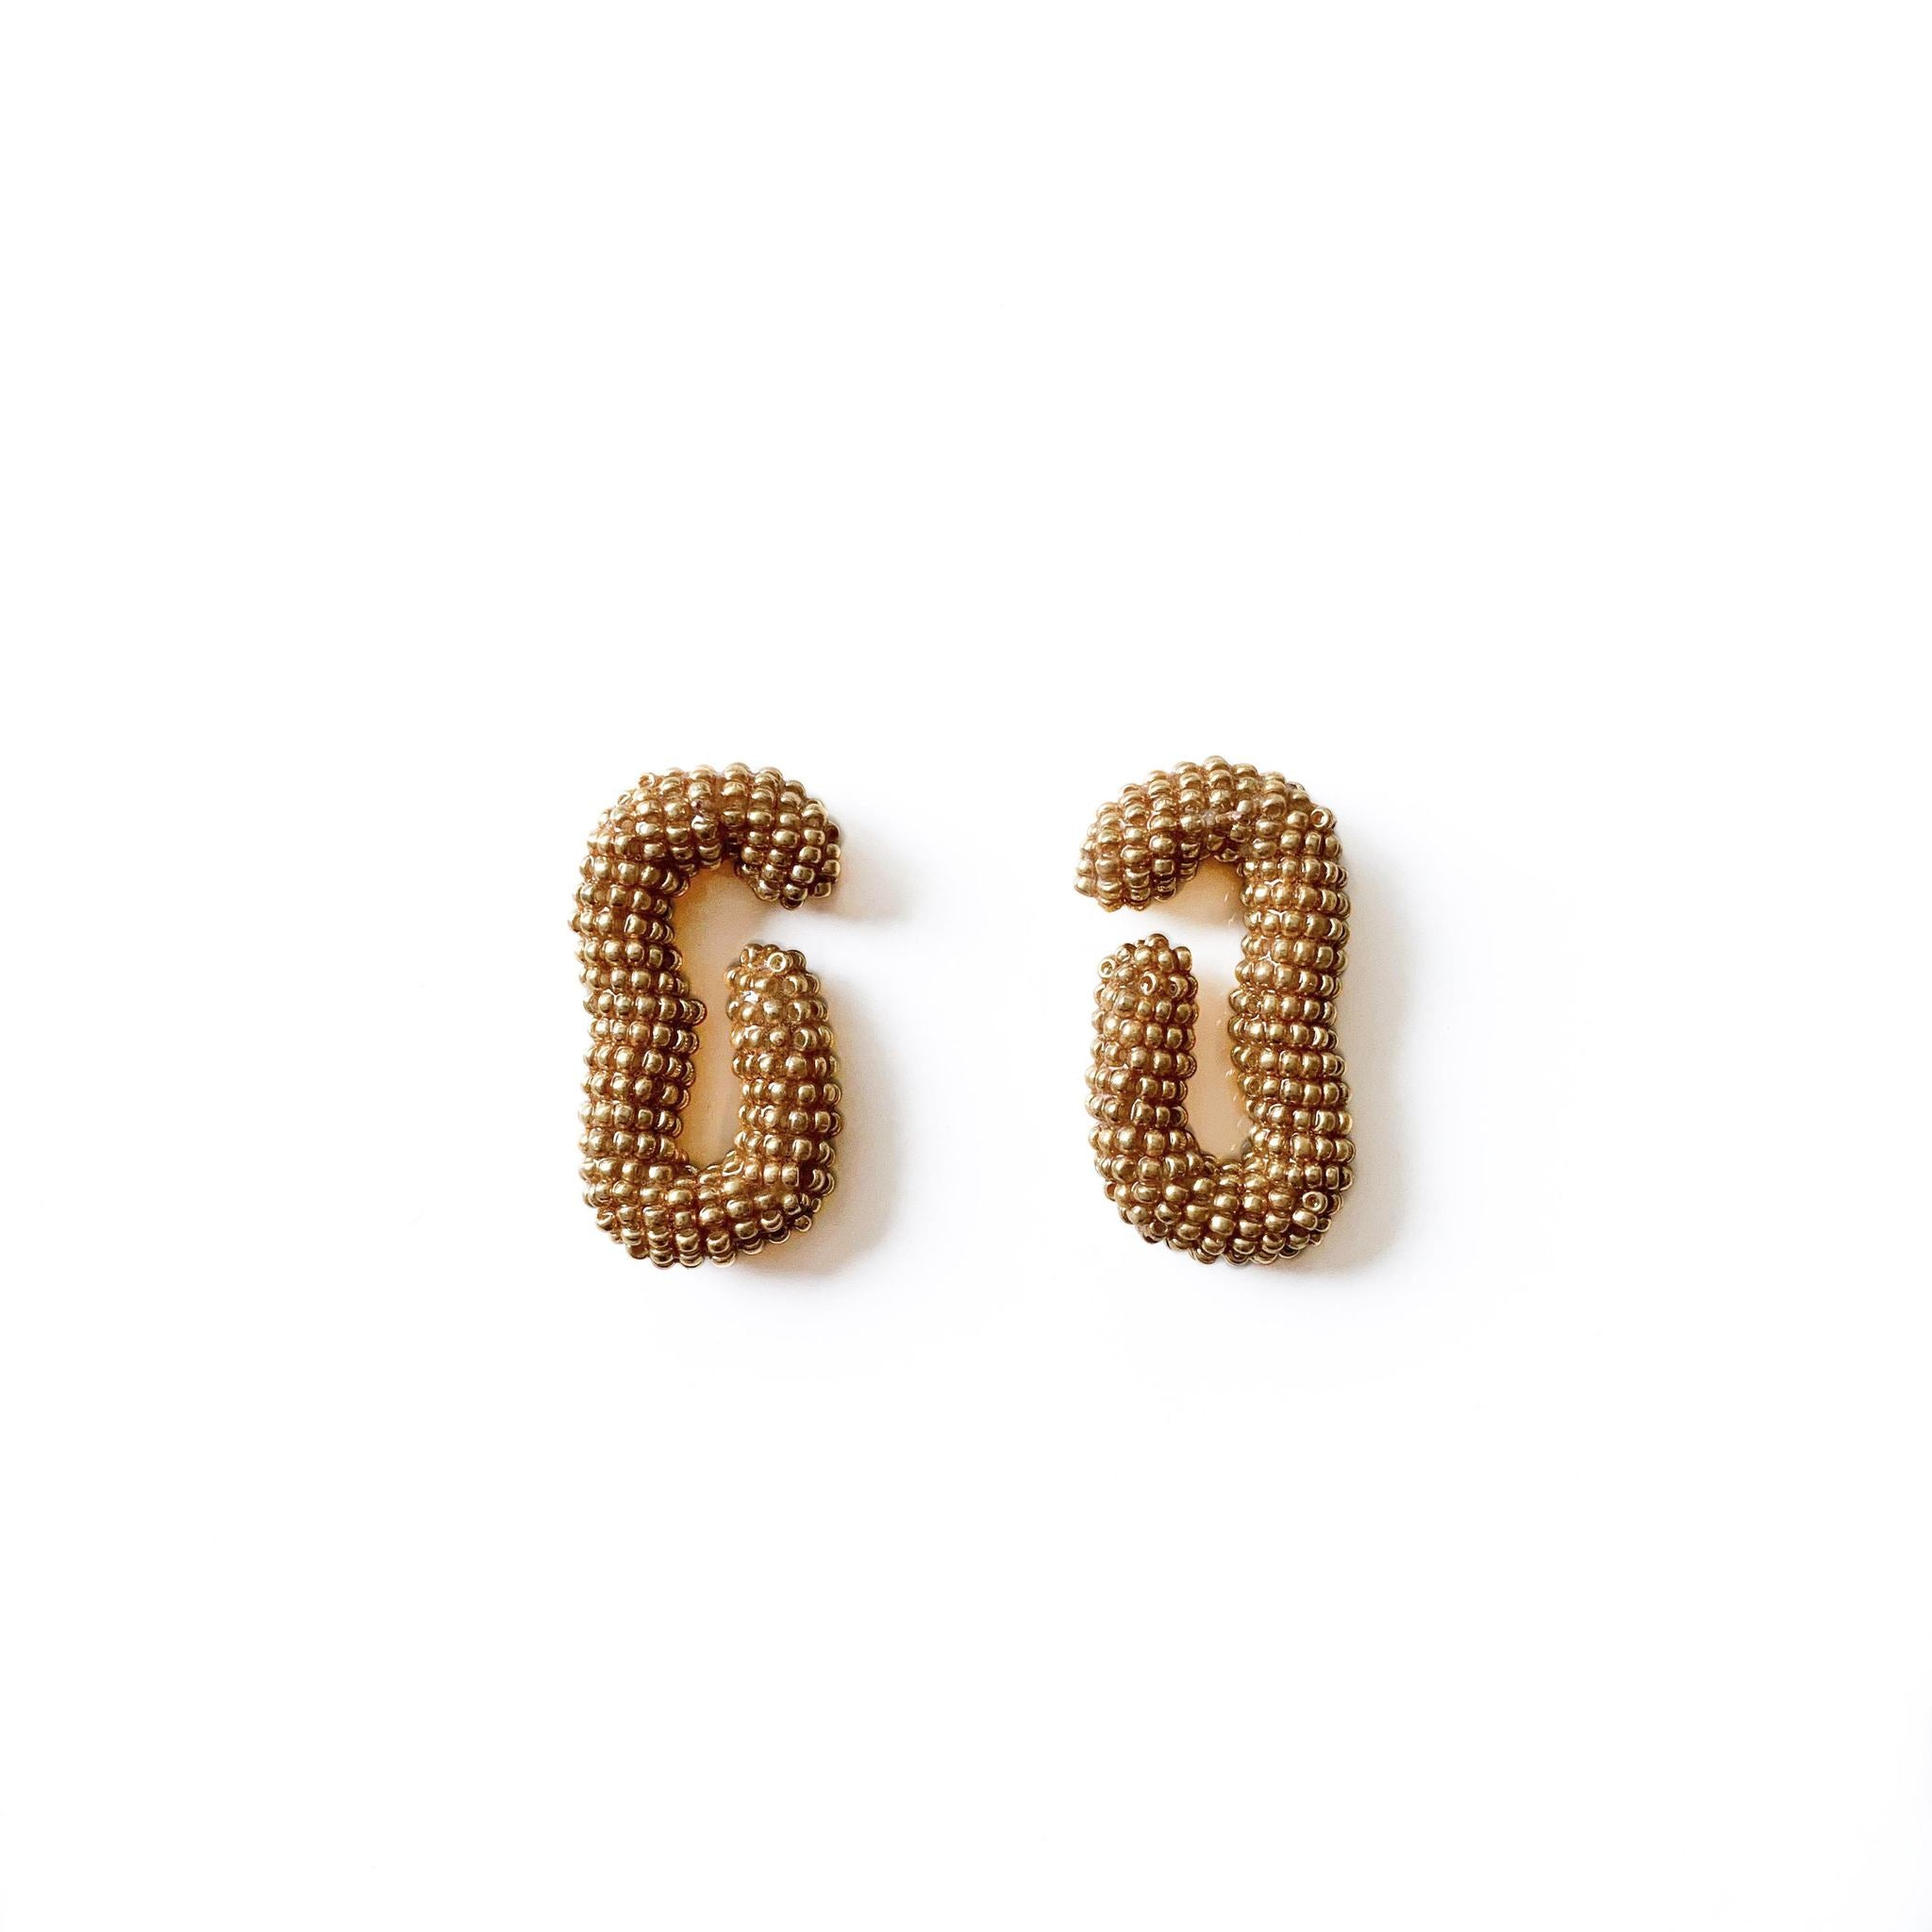 Susana Vega Lira C Hand Beaded Earrings